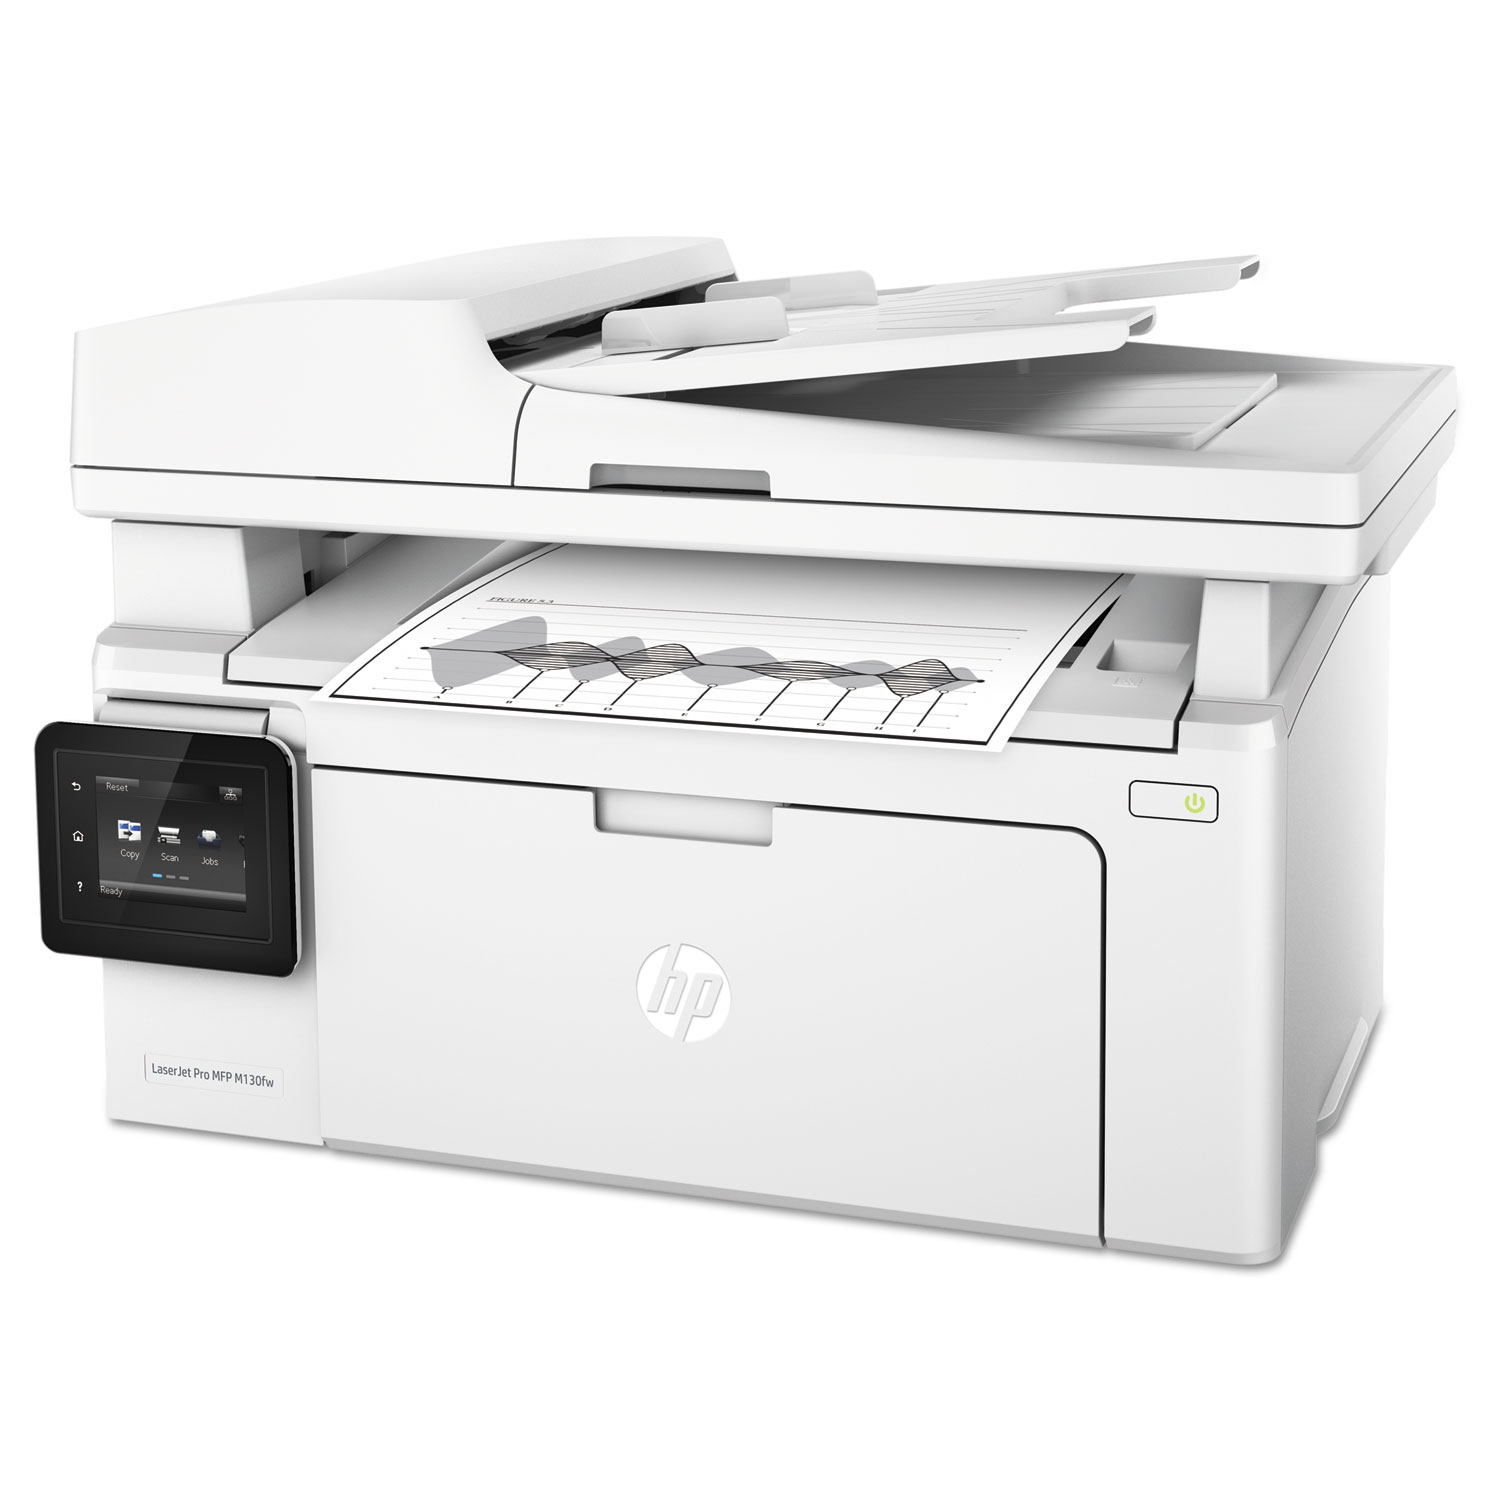 LaserJet Pro MFP M130fw Multifunction Printer, Copy/Fax/Print/Scan